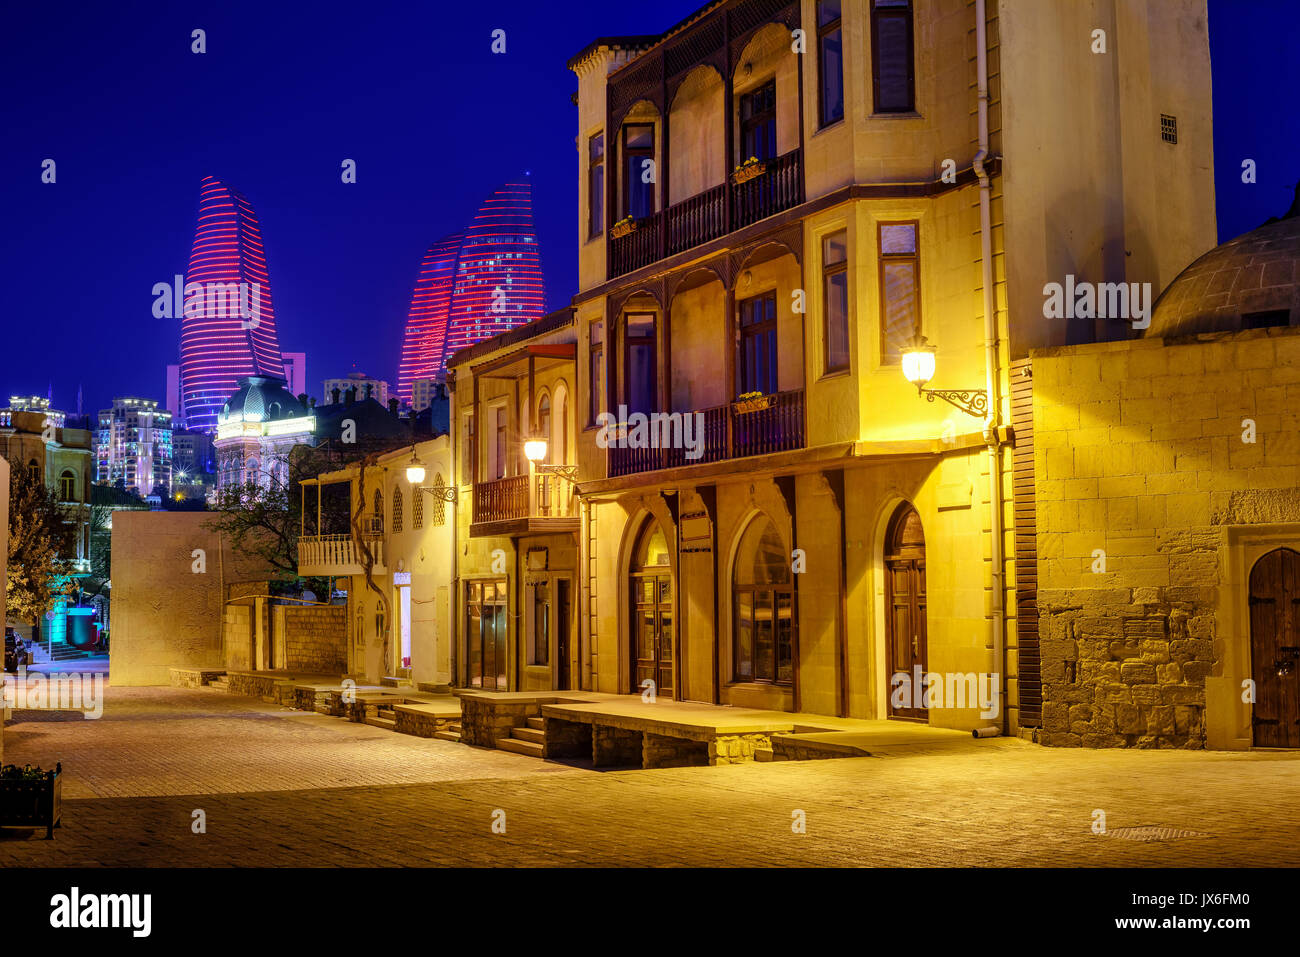 Historical houses in Baku Old Town and the illuminated Flame Towers at evening, Azerbaijan - Stock Image